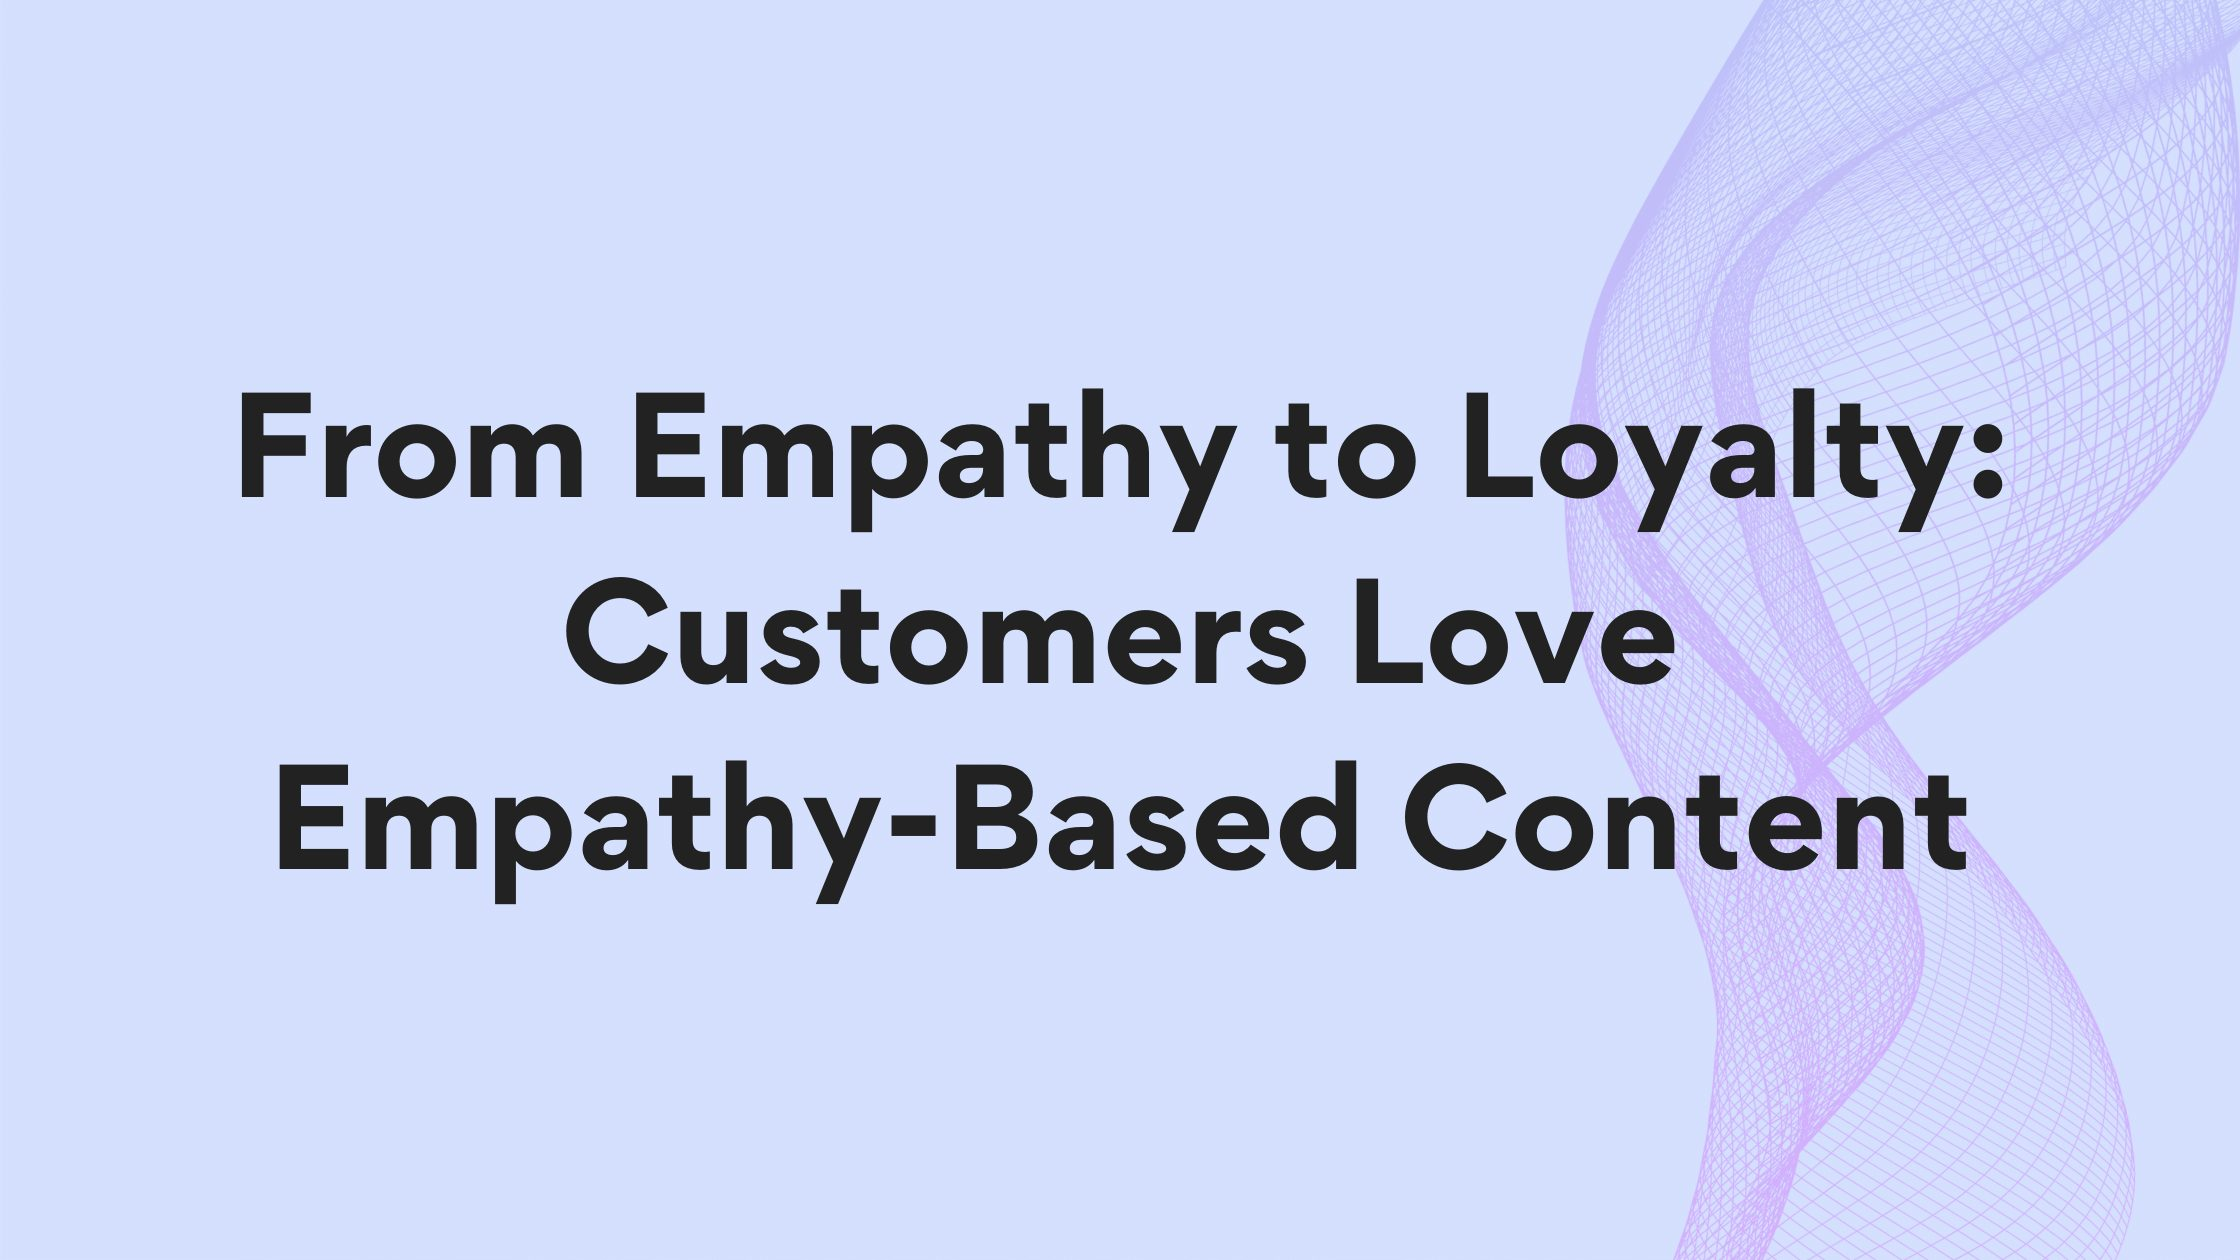 from empathy to loyalty: customers love empathy-based content